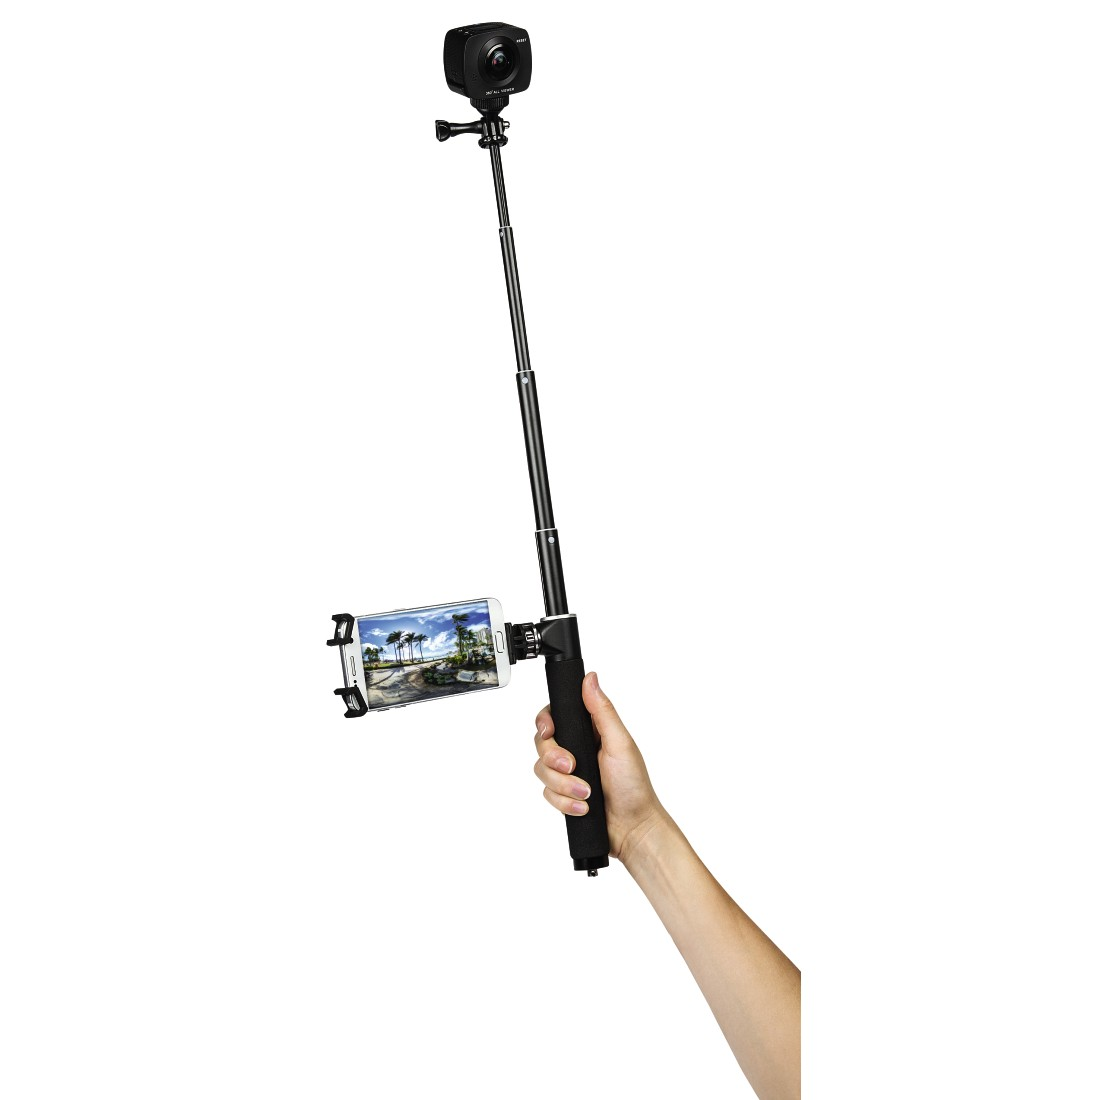 "awx High-Res Appliance - Hama, Zelf-monopod ""Selfie 100 Panorama"""